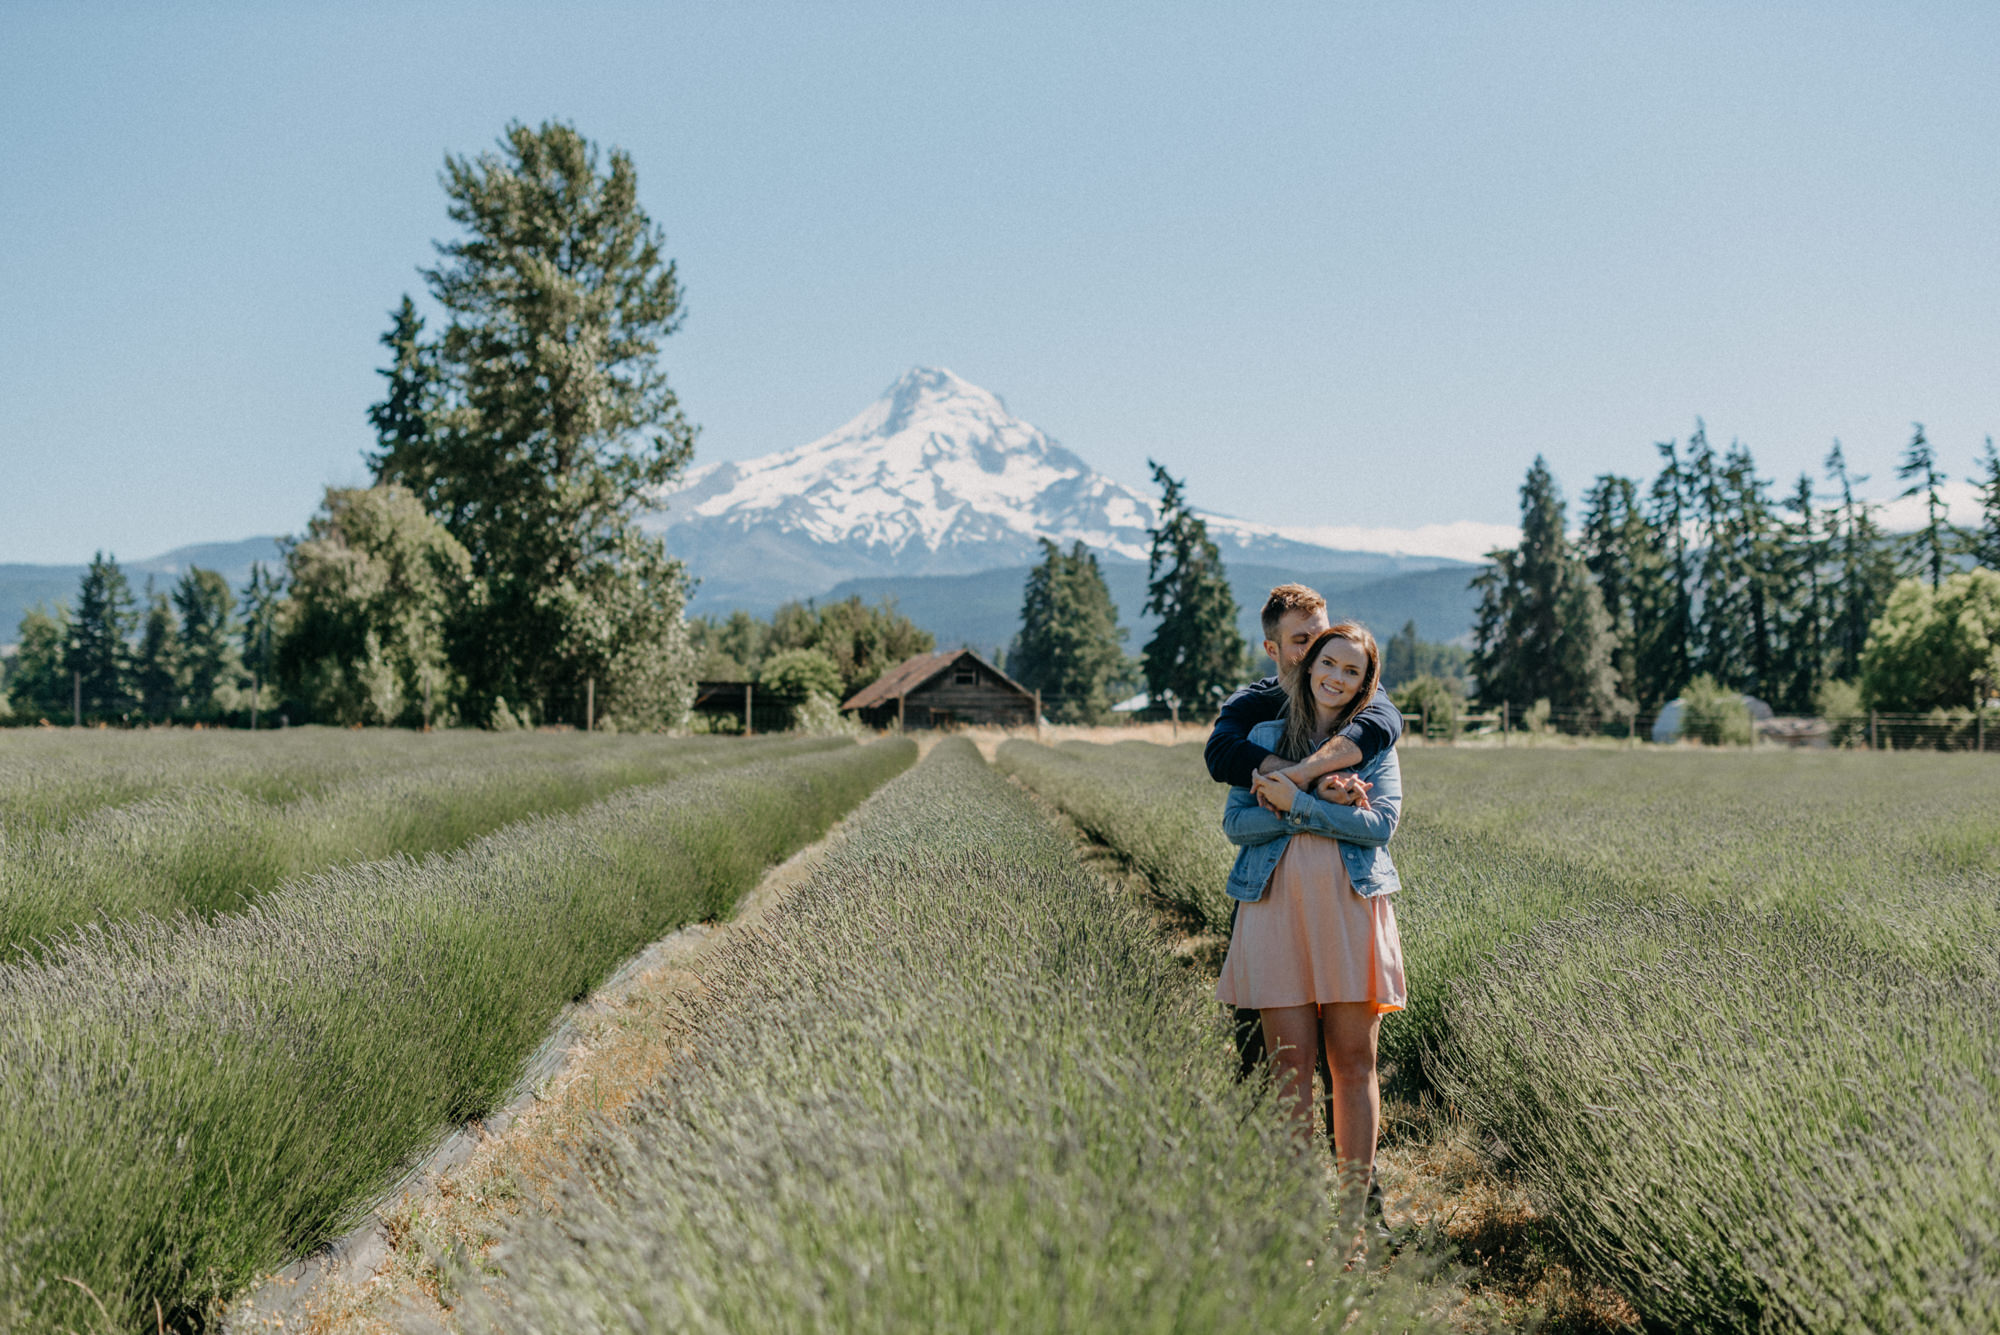 8-Mt-hood-lavender-farms-engagment-couple-summer-7106.jpg